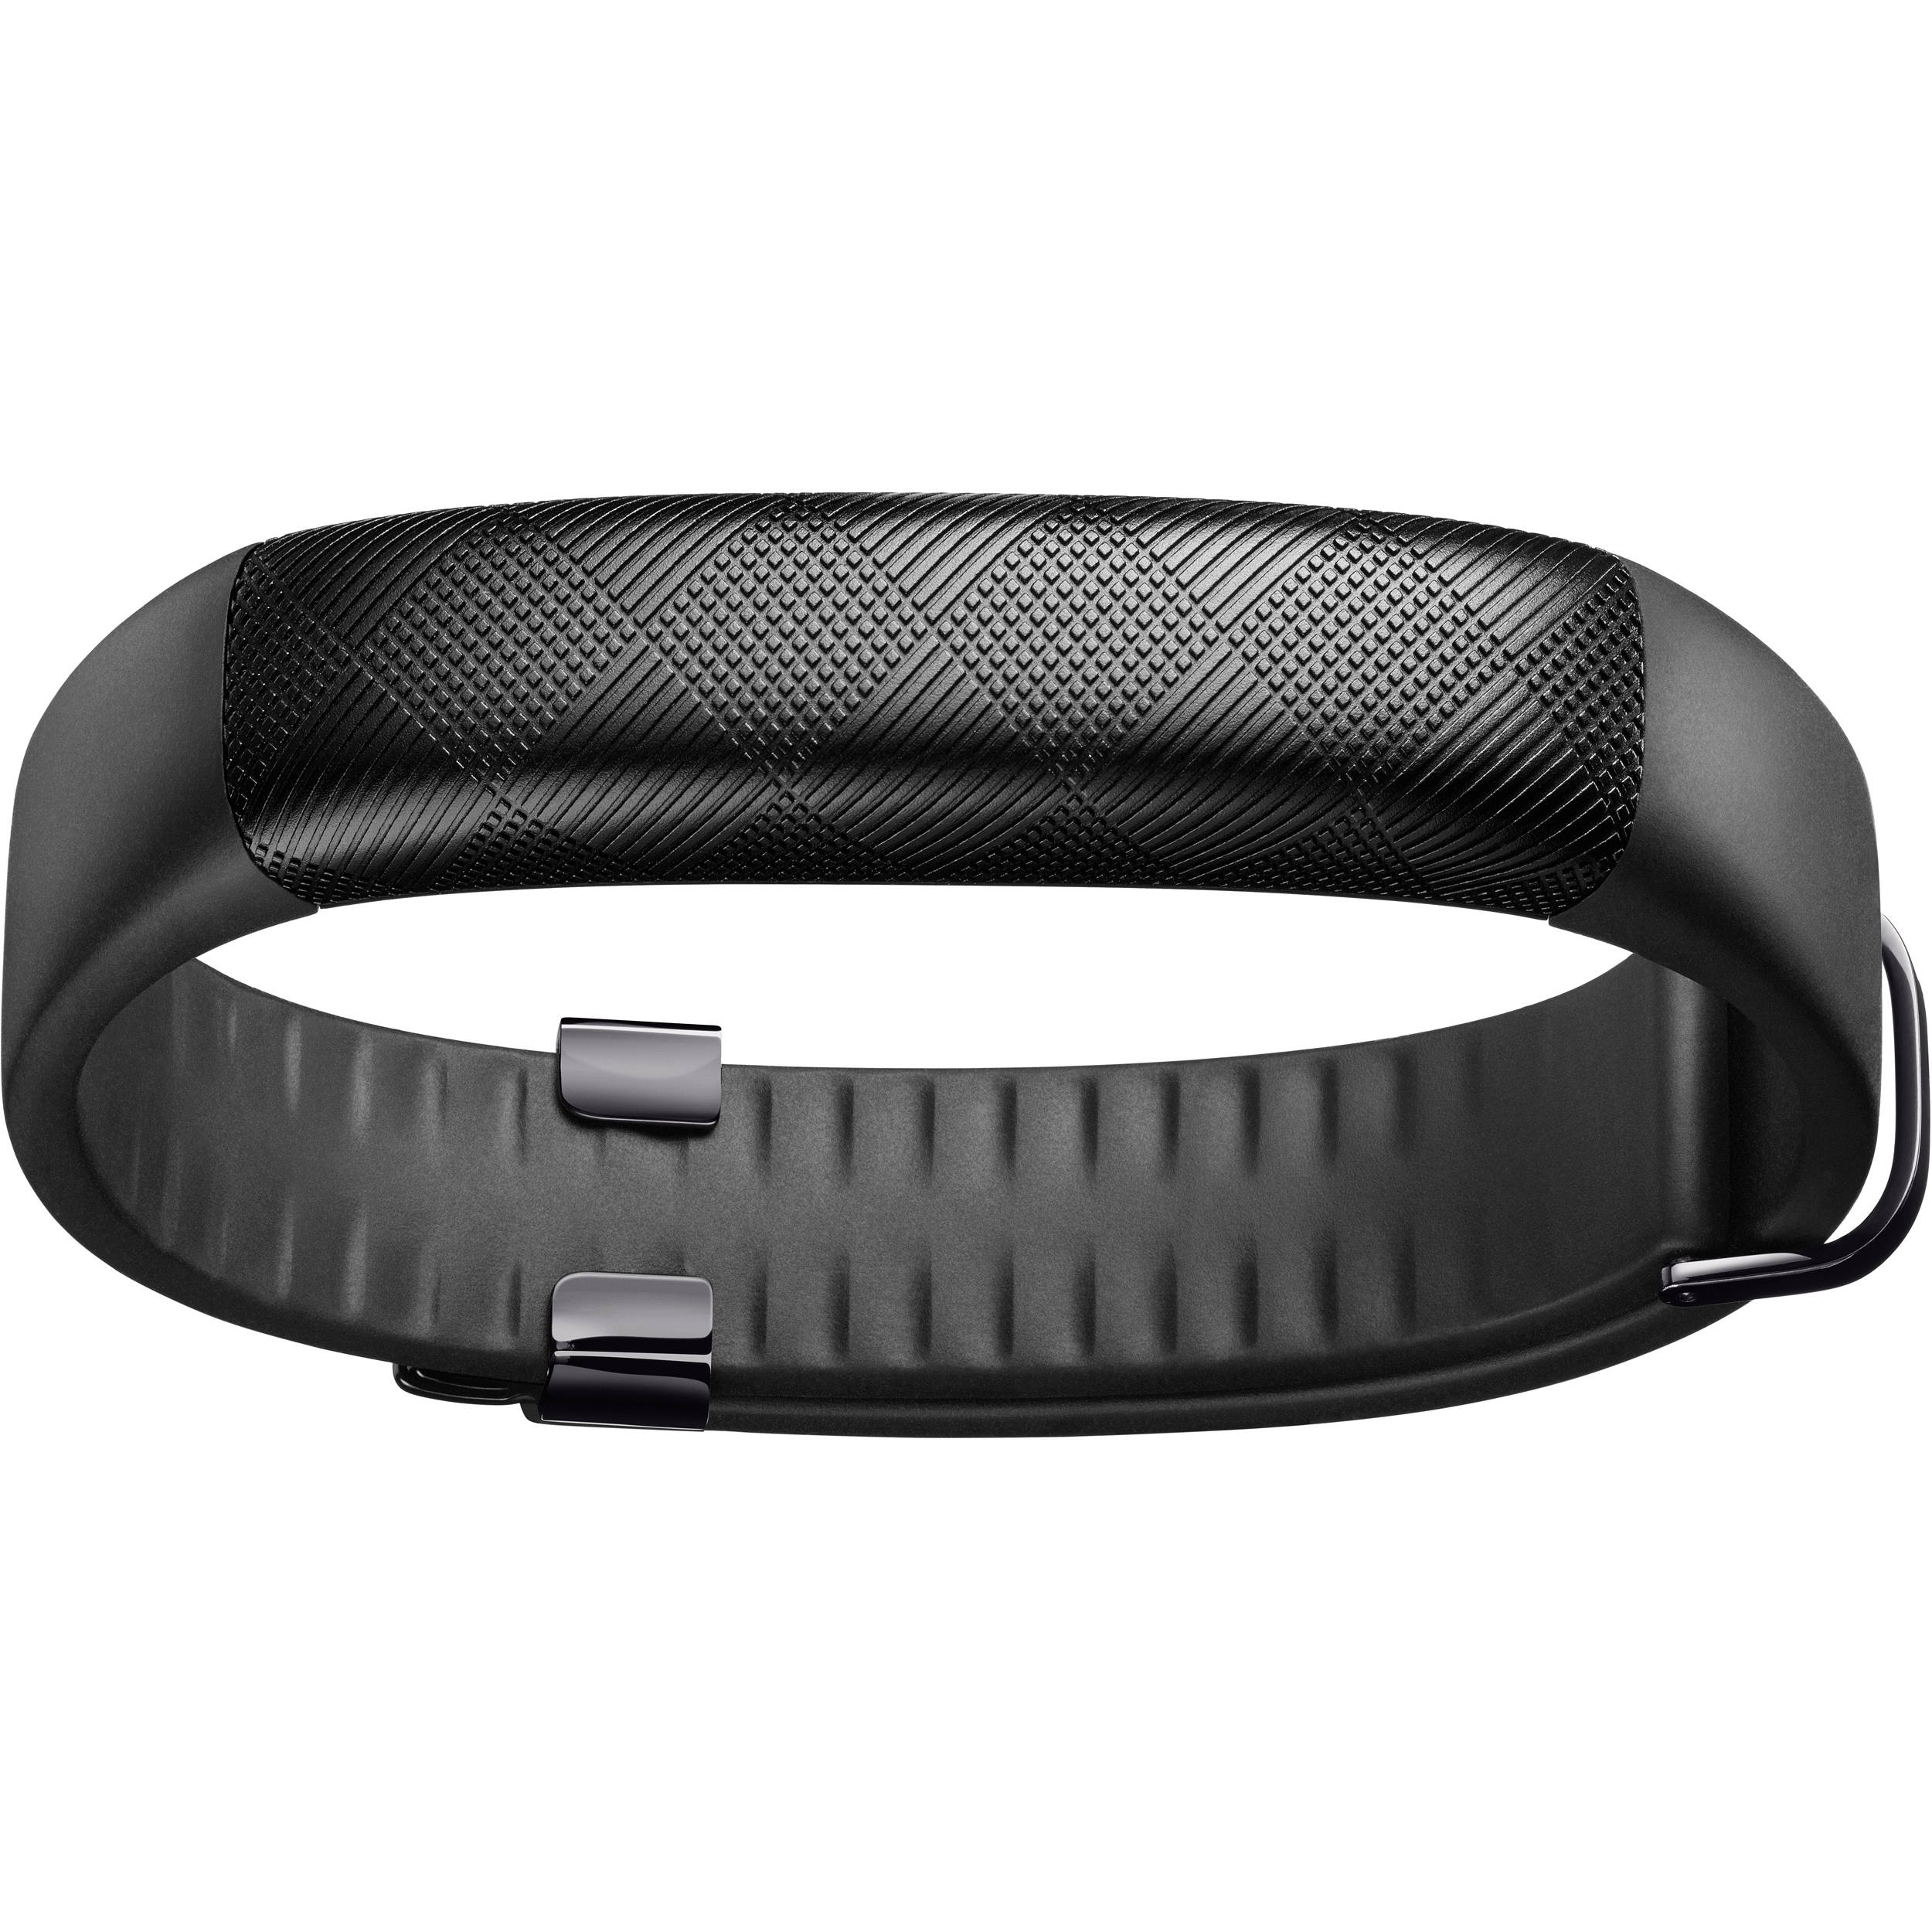 used jawbone up2 fitness tracker black diamond jl03 0303agd us rh bhphotovideo com Jawbone Up 2 Payments Jawbone Up24